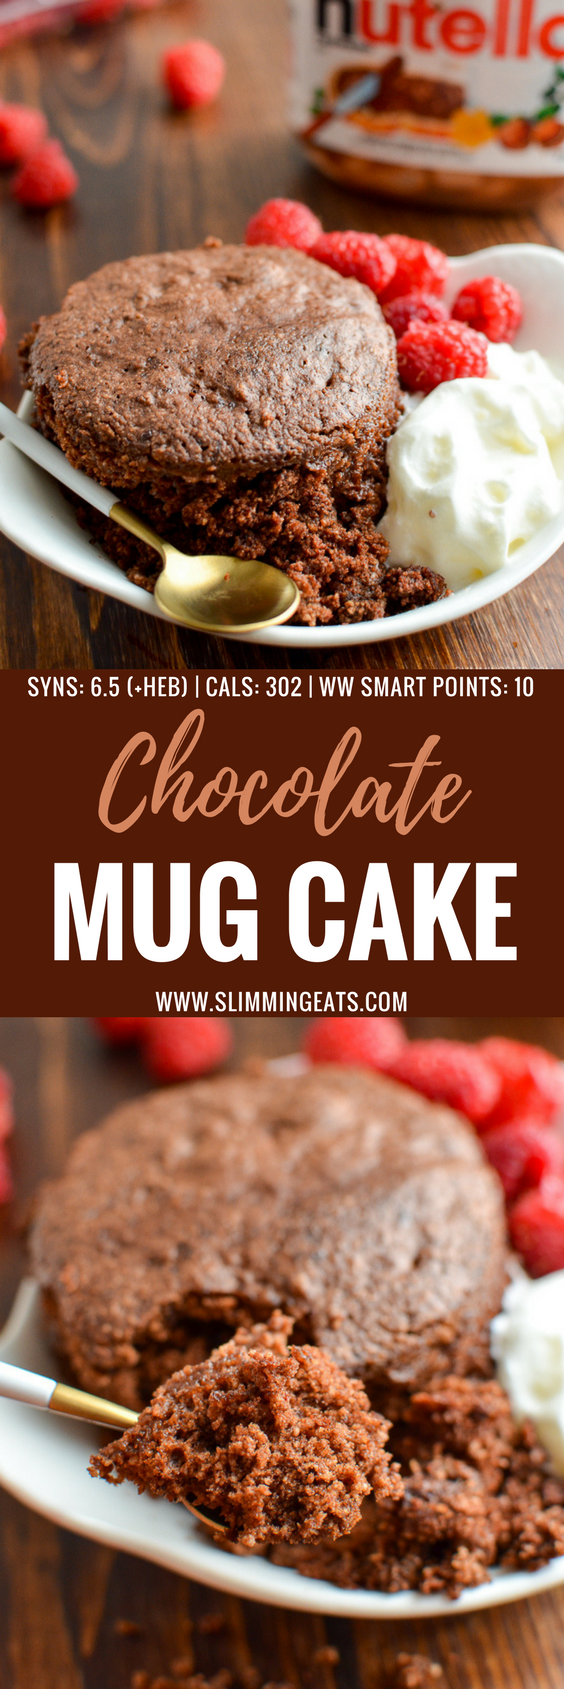 The Best Slimming World Microwave Chocolate Mug Cake you will ever make - seriously this is light, fluffy and delicious!! Gluten Free, Vegetarian, Slimming World and Weight Watchers friendly | www.slimmingworld.com